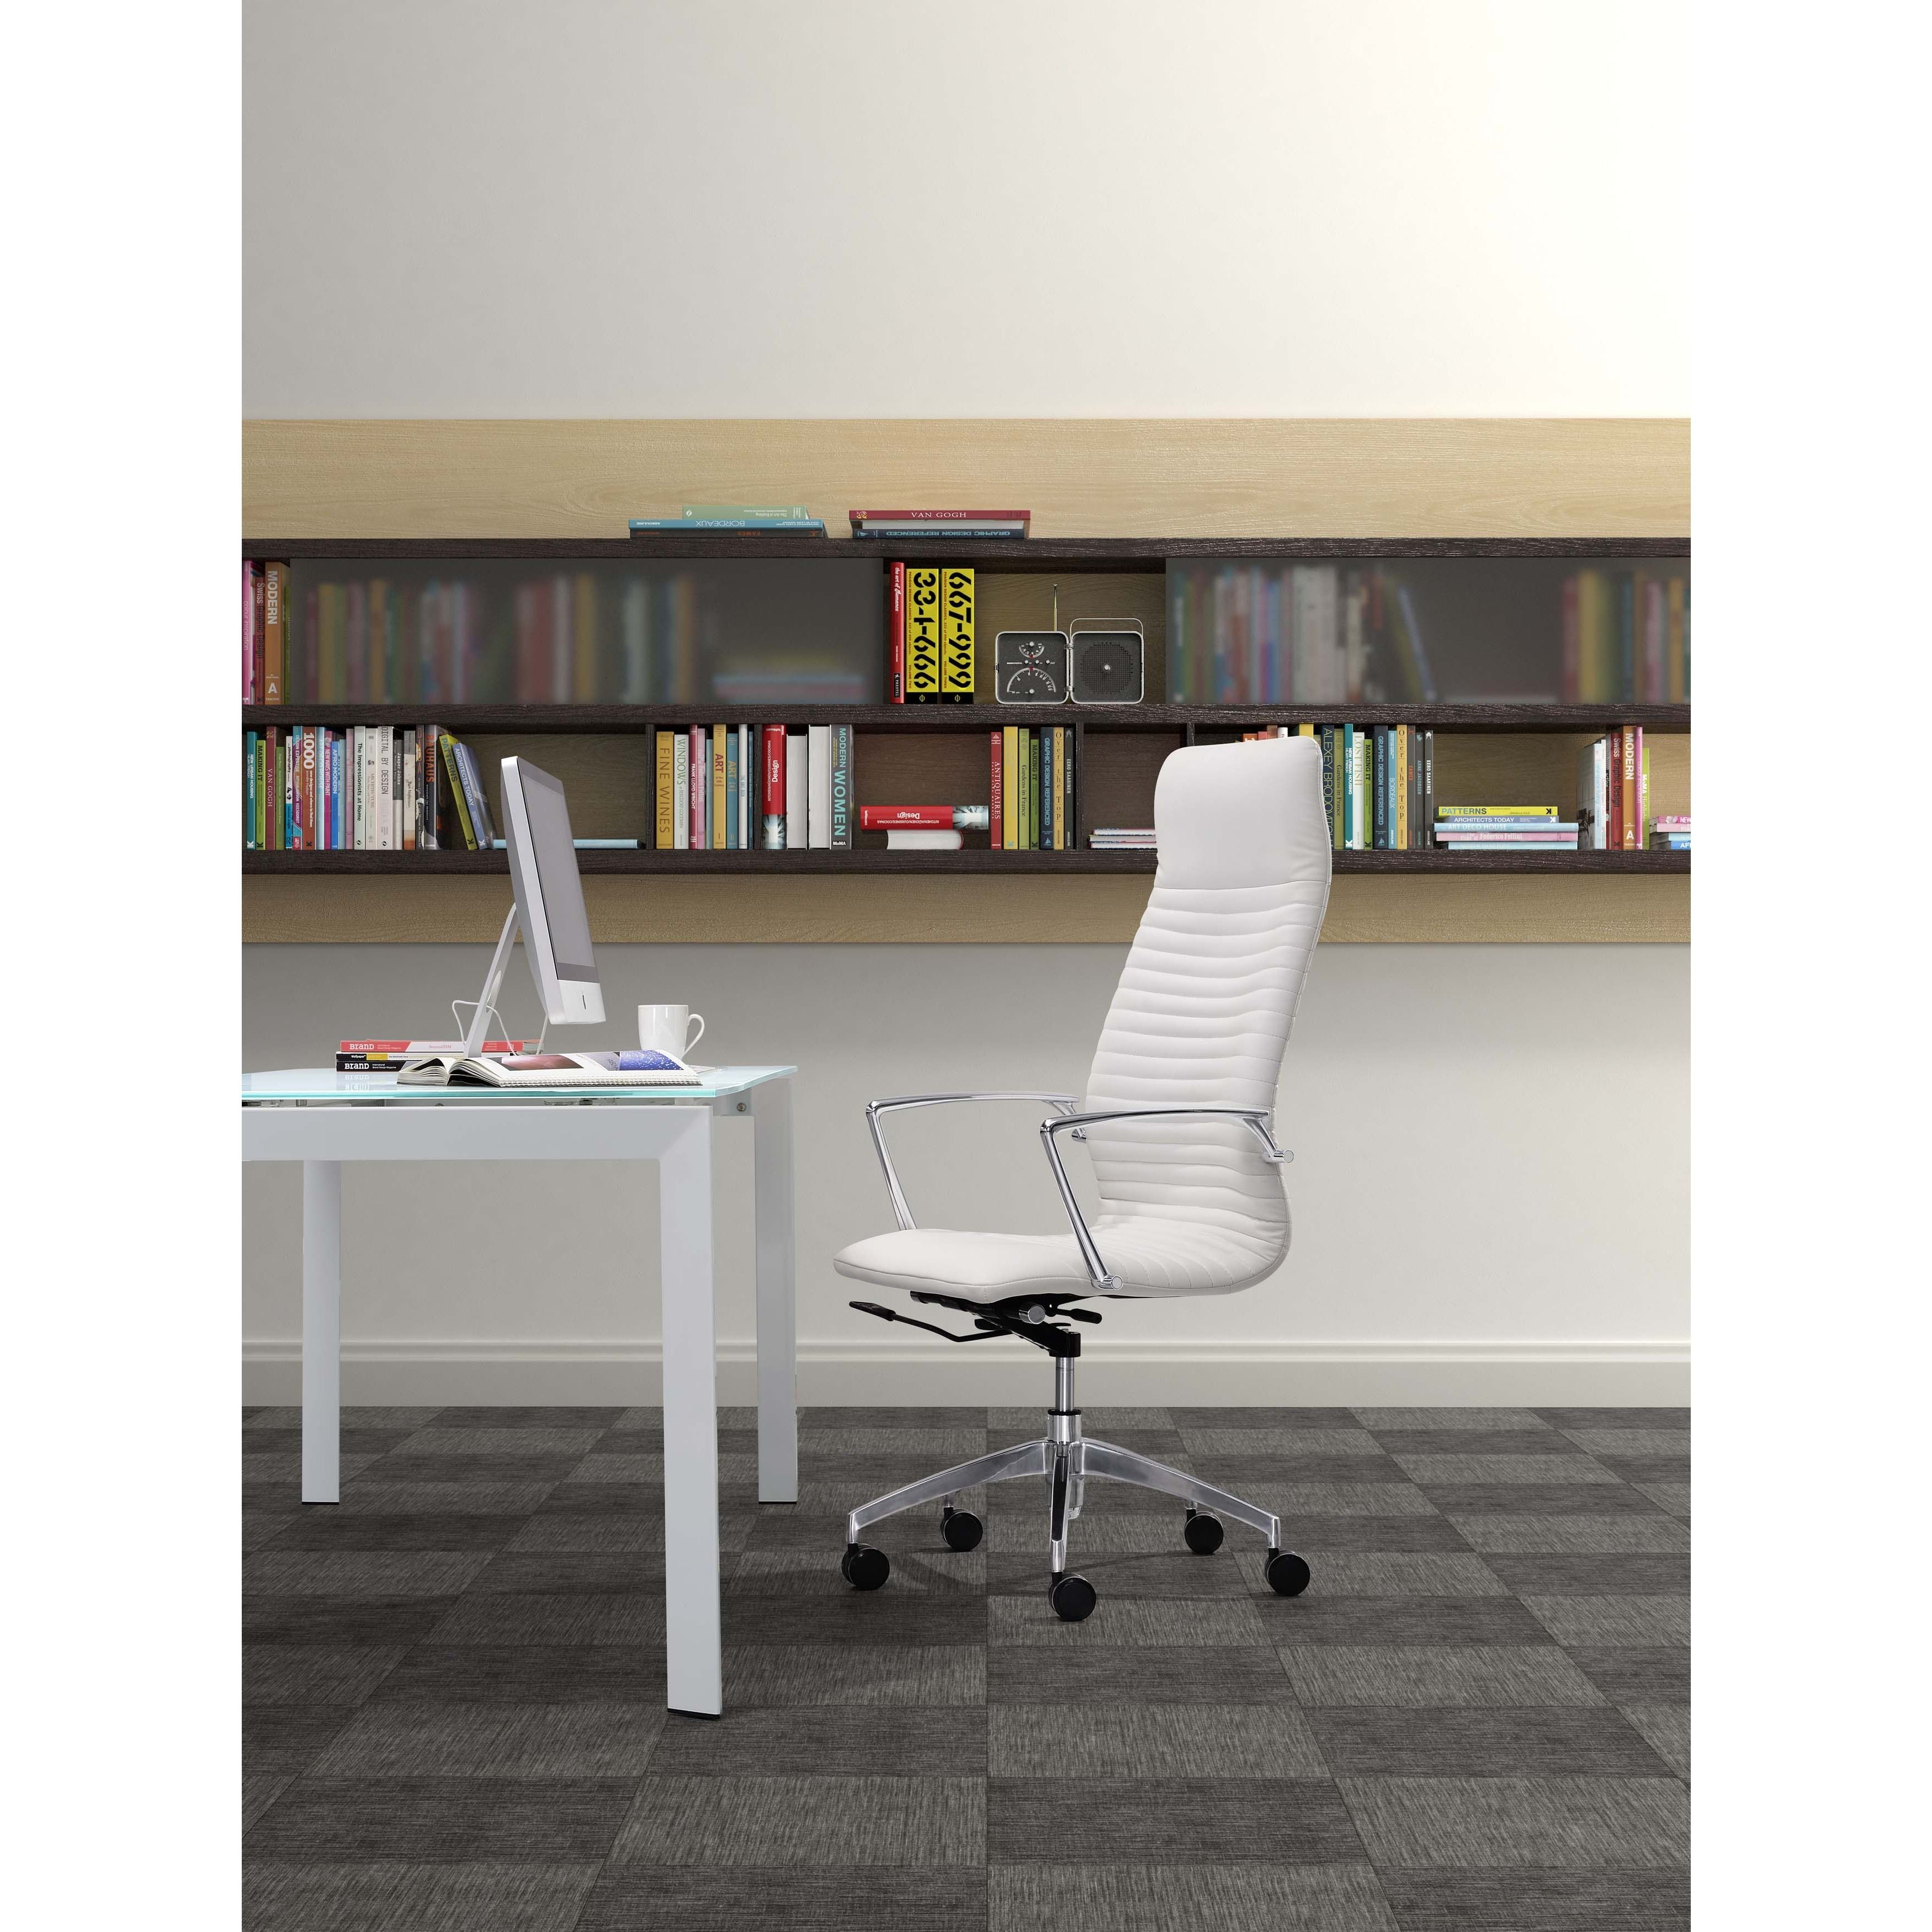 classy chair logo design. This gorgeous office chair features a classy white faux leather upholstery  chromed steel finish and